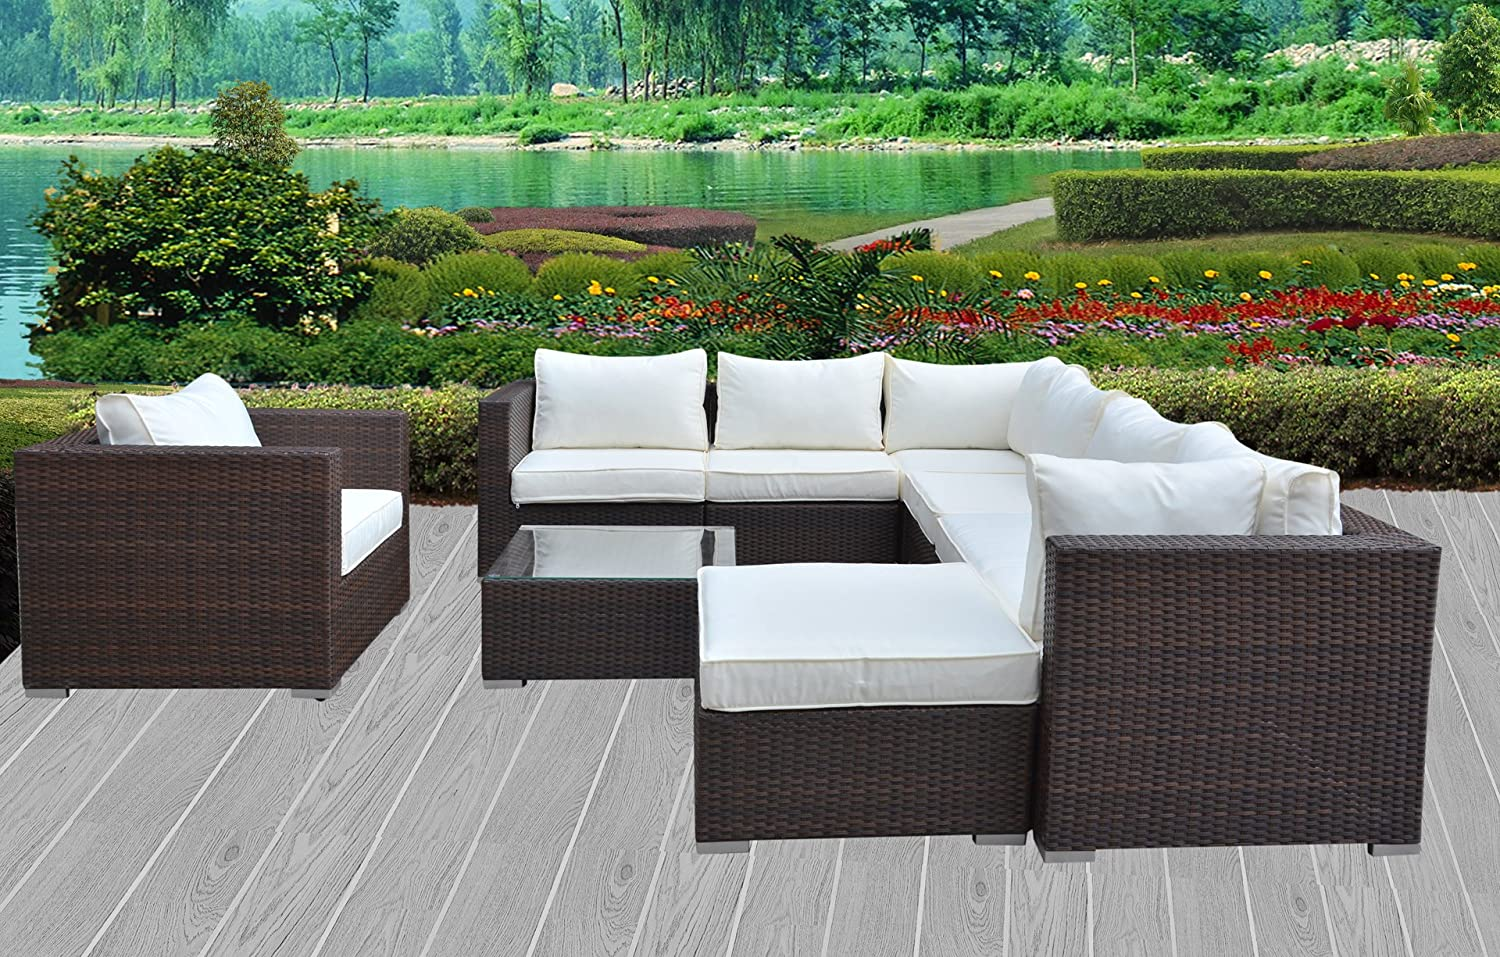 hansson sports gartenm bel polyrattan lounge sitzgruppe braun 87 x 87 x 70 cm 1g106g g nstig. Black Bedroom Furniture Sets. Home Design Ideas